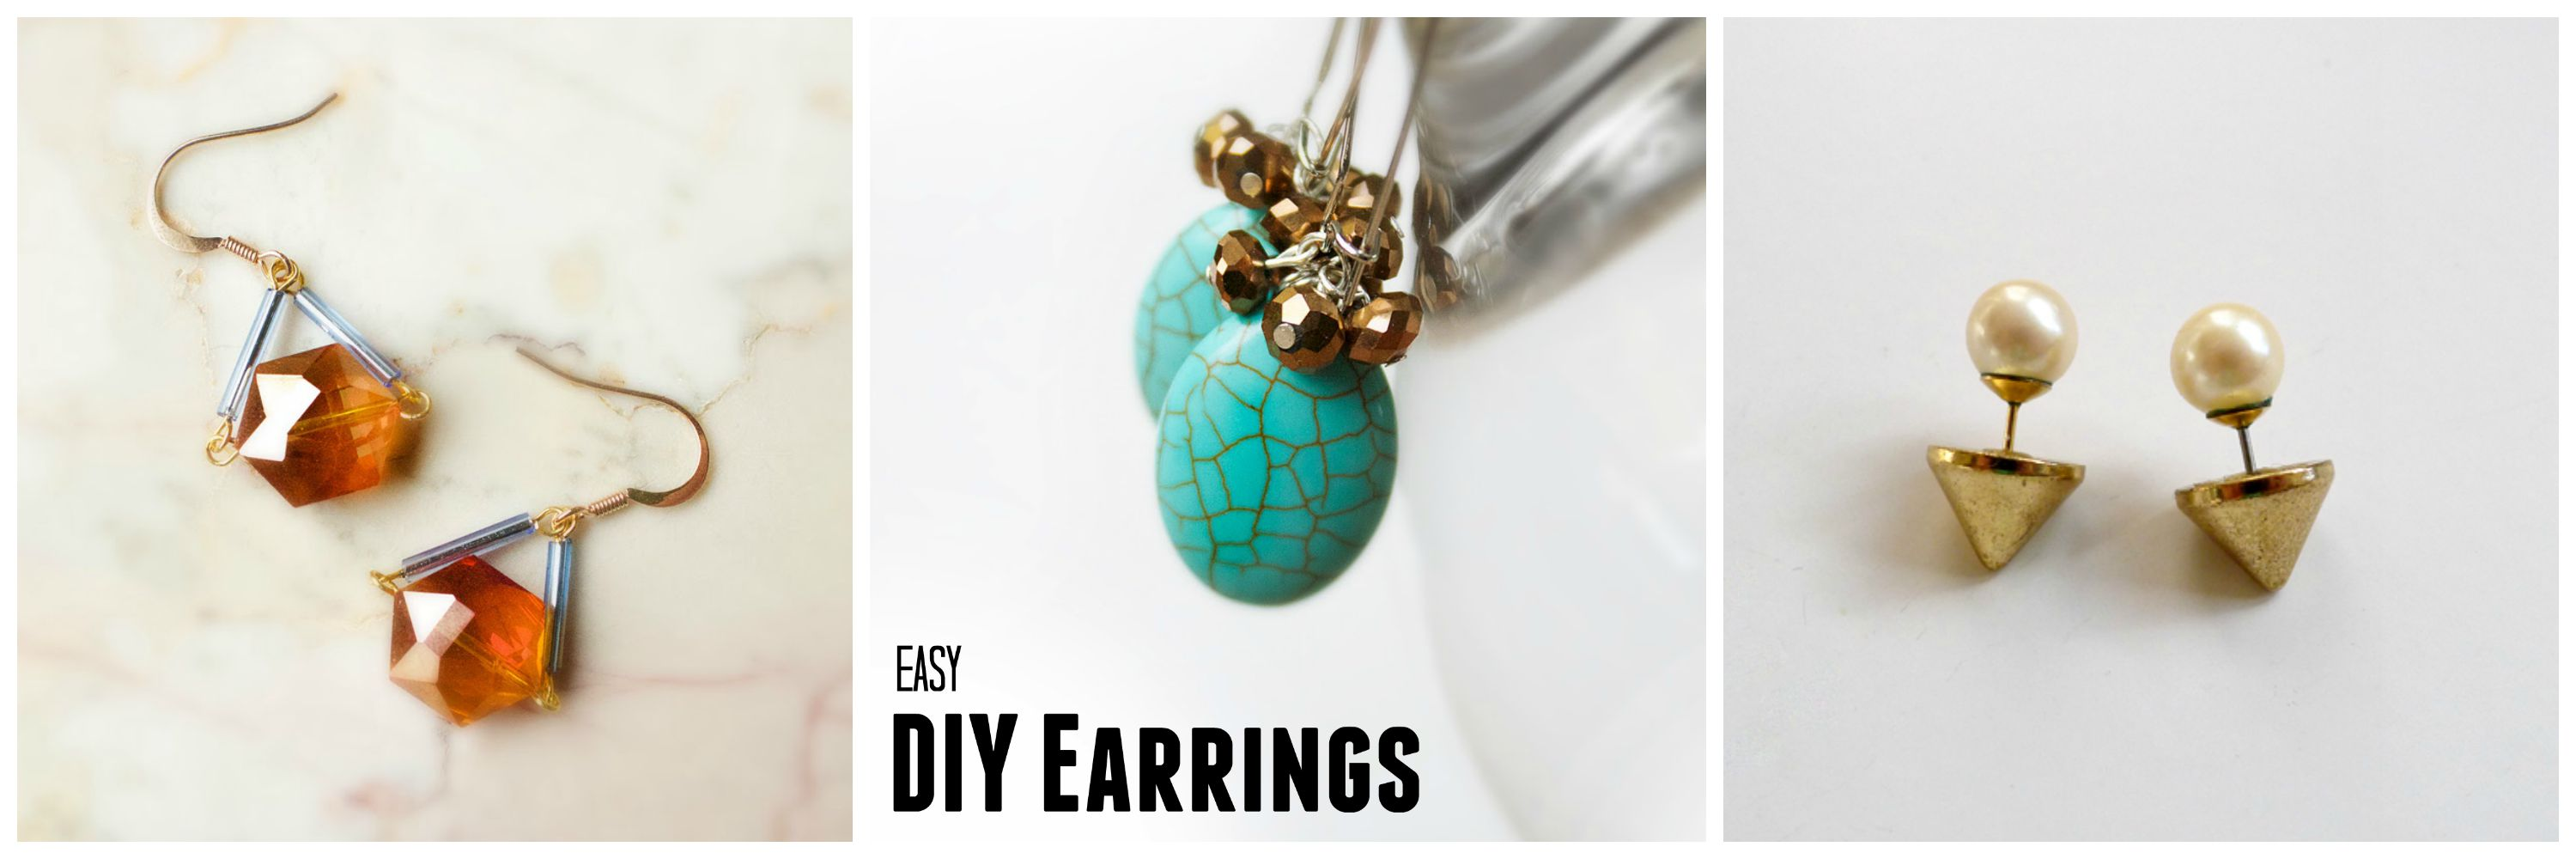 earrings happens easy it a in diy earring blink tutorials